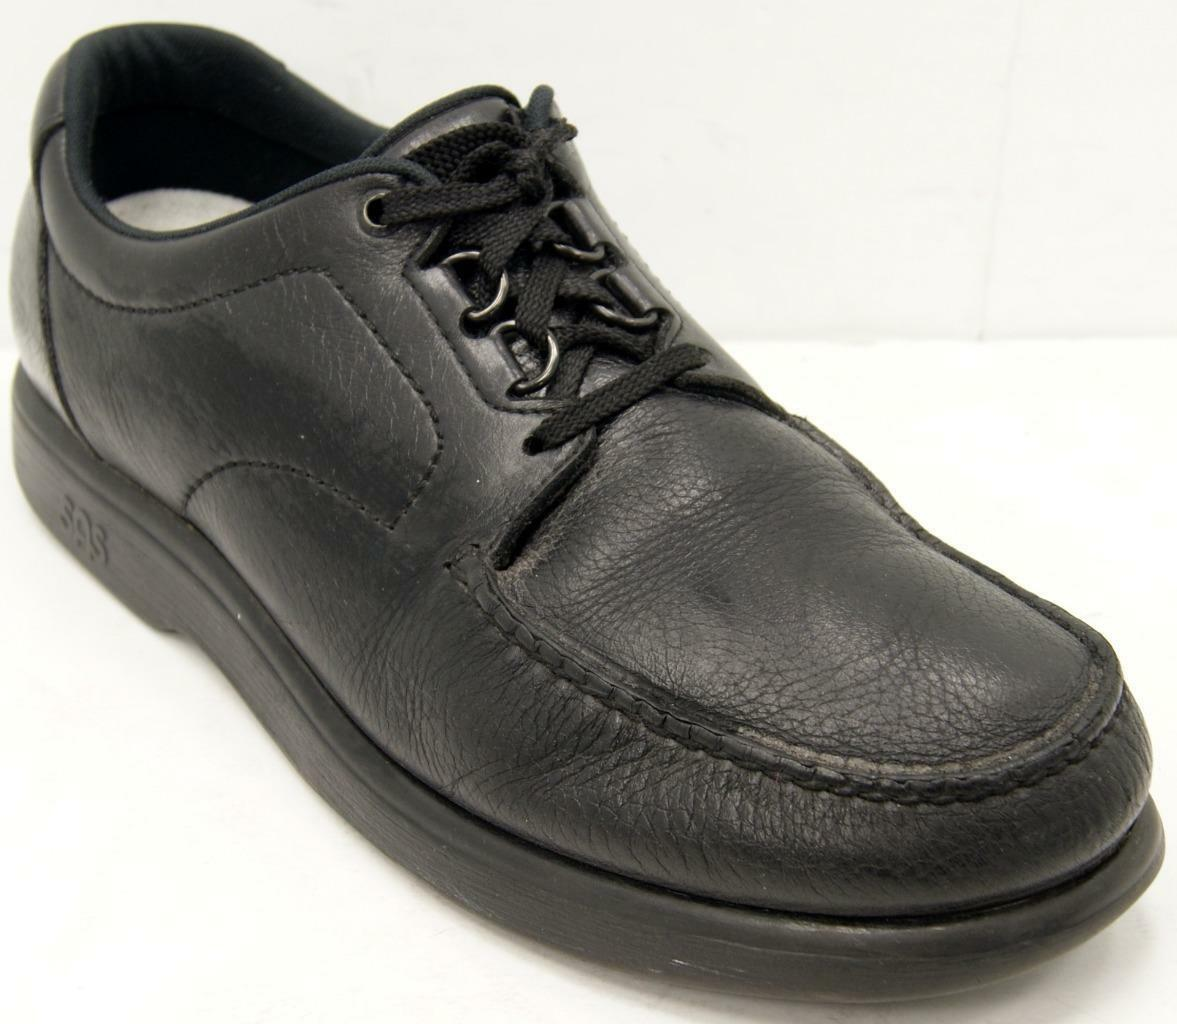 SAS Bout Time Black Leather Oxford Comfort  Men's Shoes Sz 13.5 M